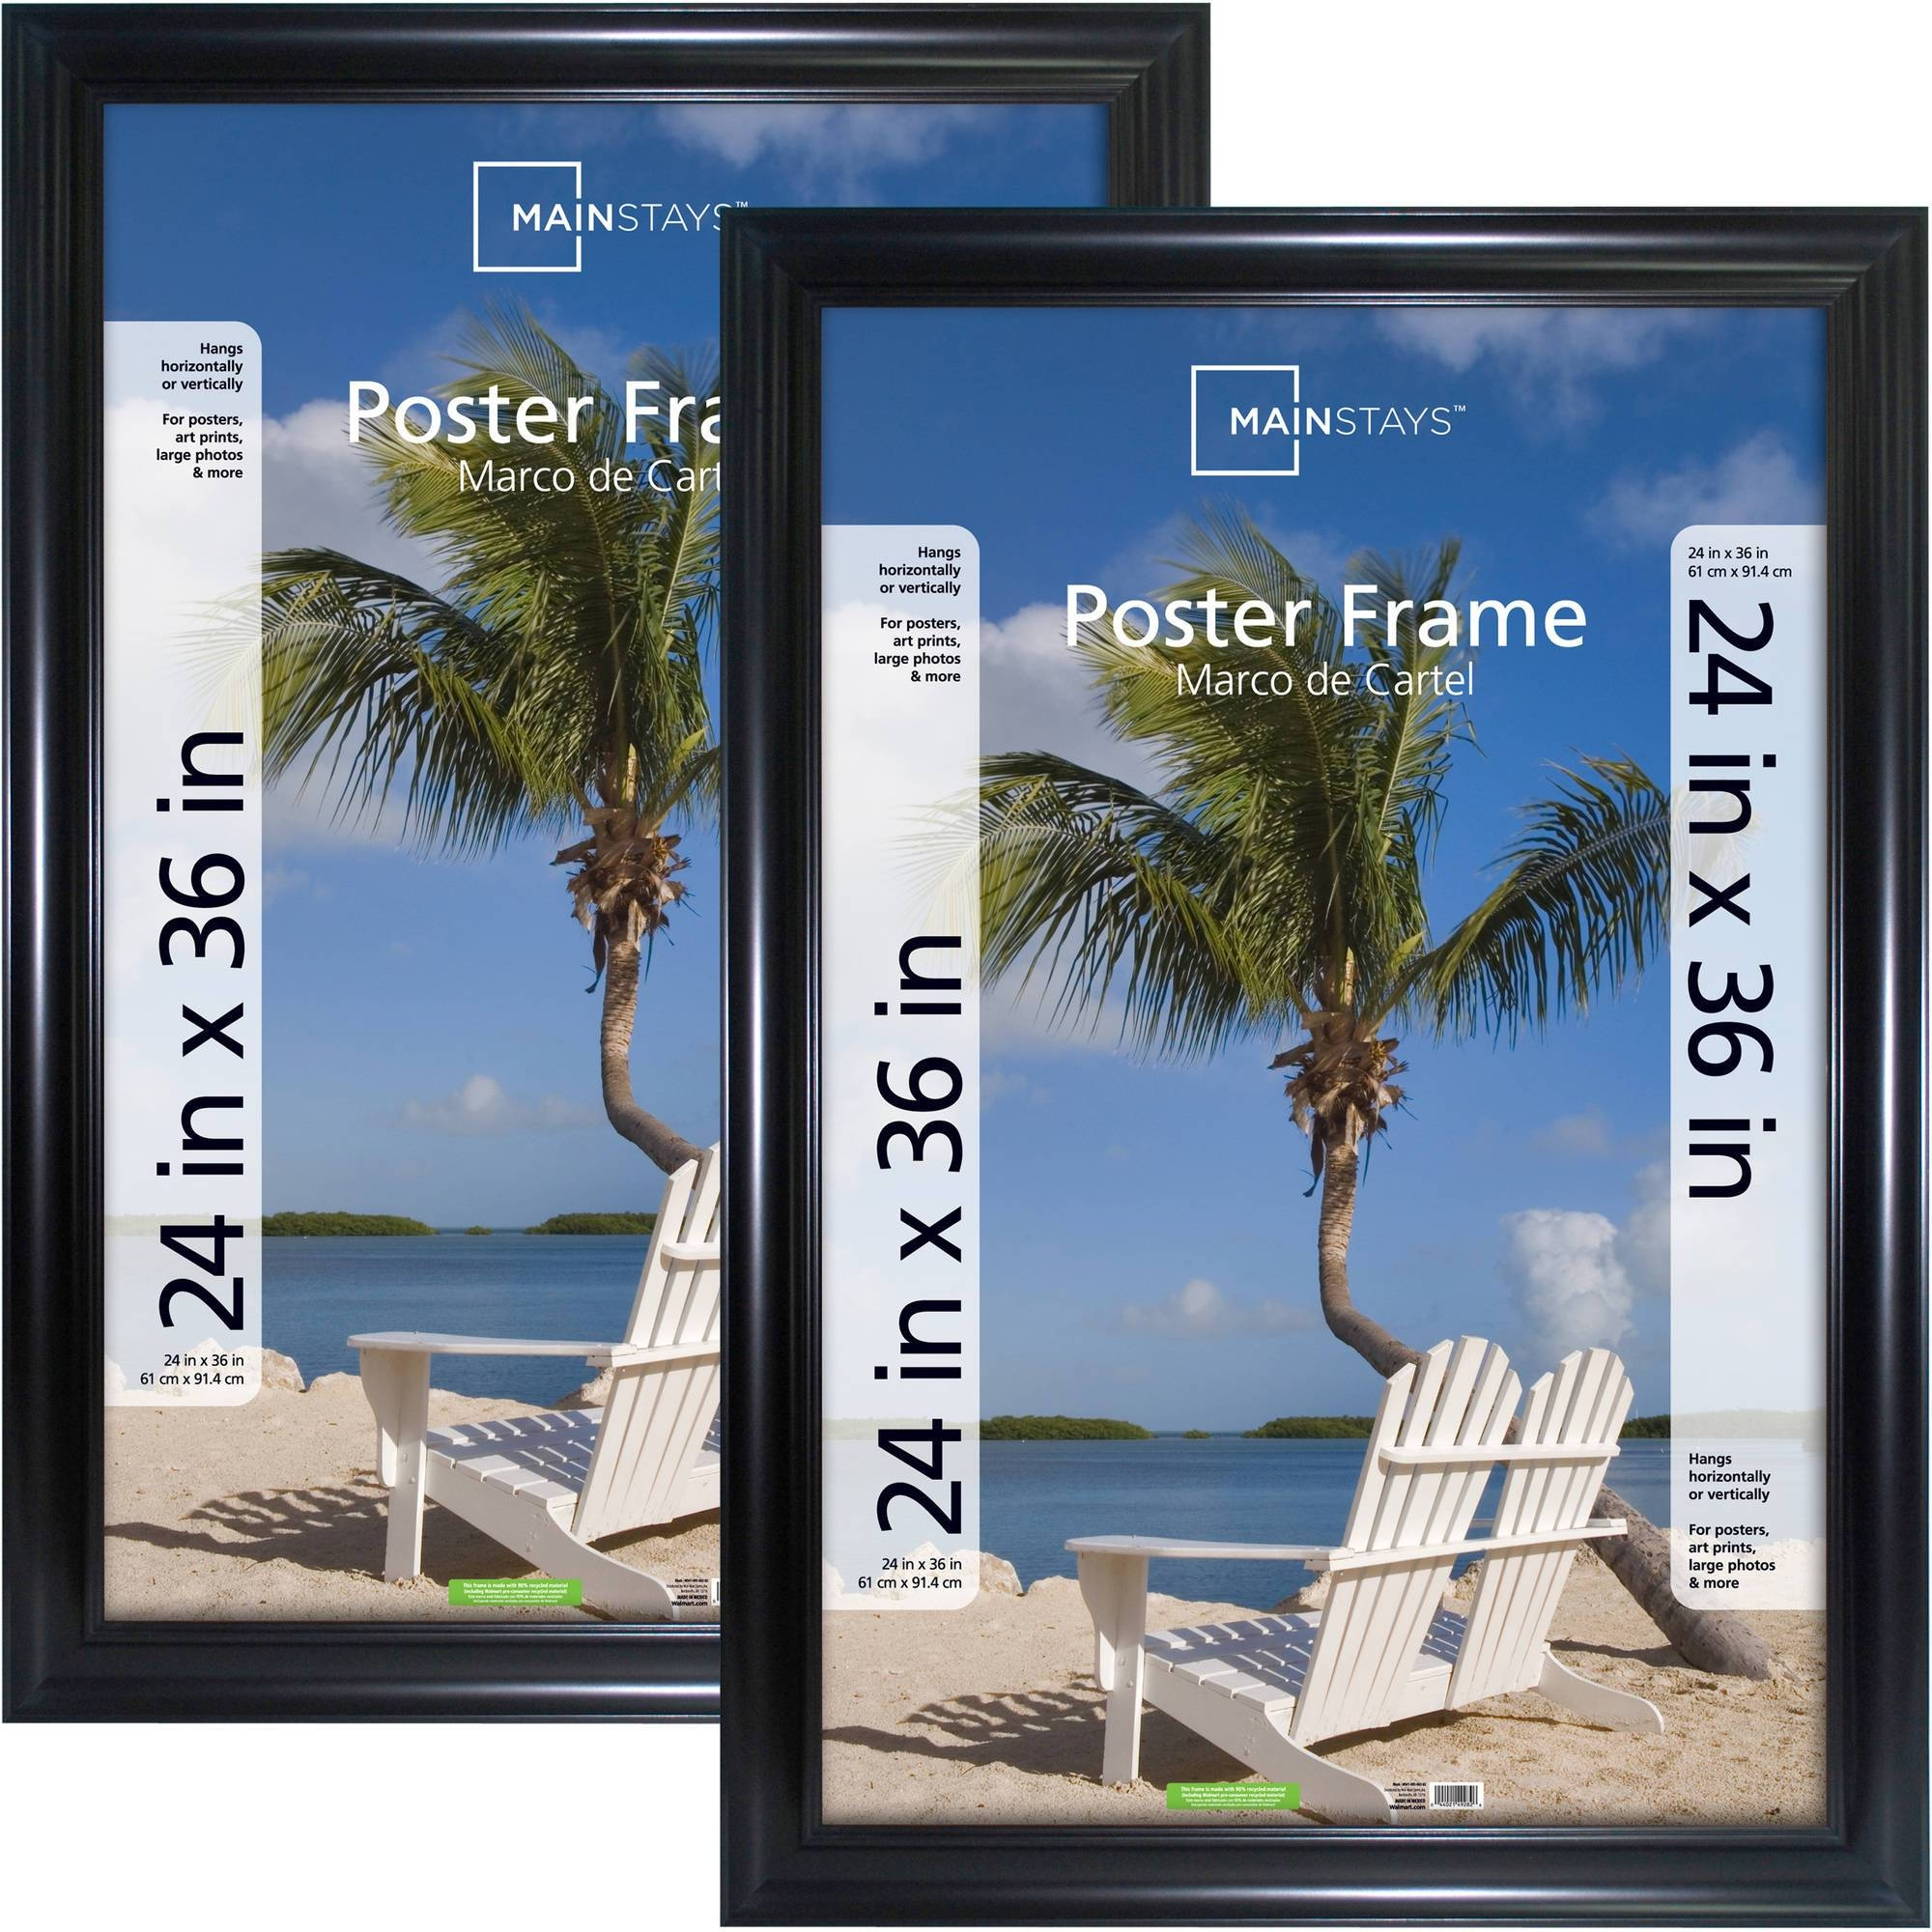 Mainstays 24X36 Wide Black Poster And Picture Frame, Set Of 2 Pertaining To Current Walmart Framed Art (View 9 of 20)